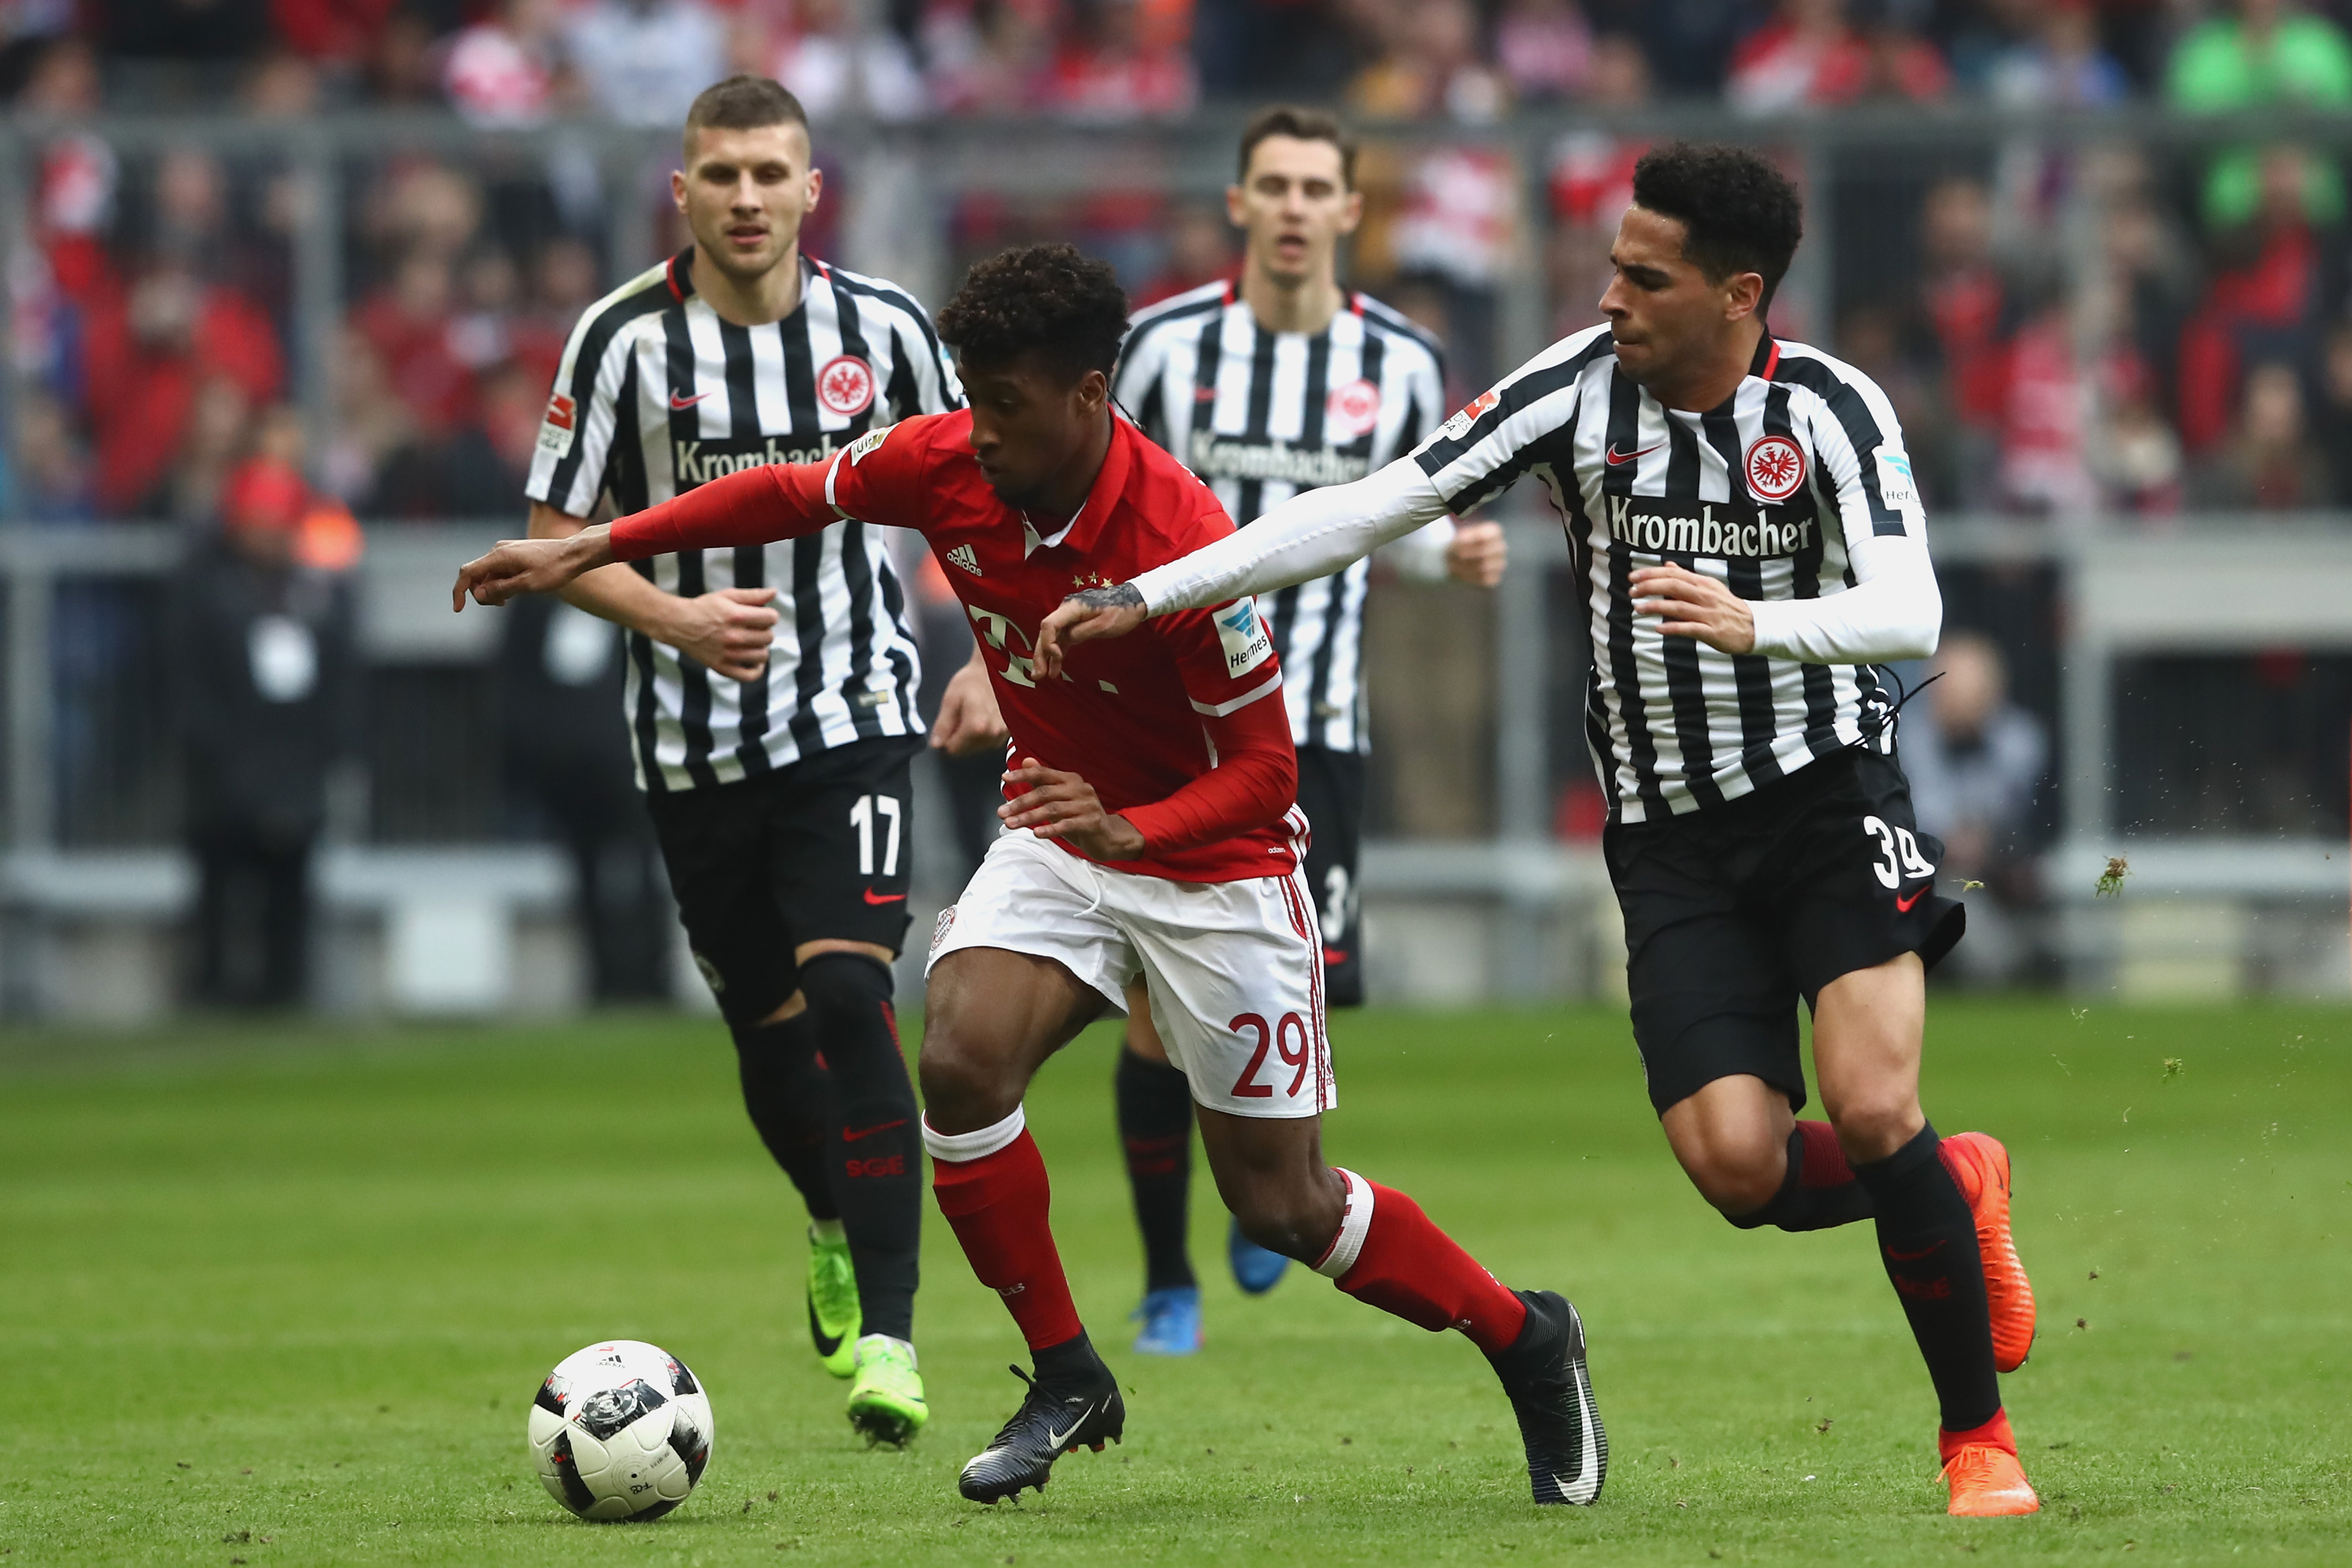 Bayern Munich winger Kingsley Coman could be about to seek a new challenge amidst interest from Liverpool and Chelsea